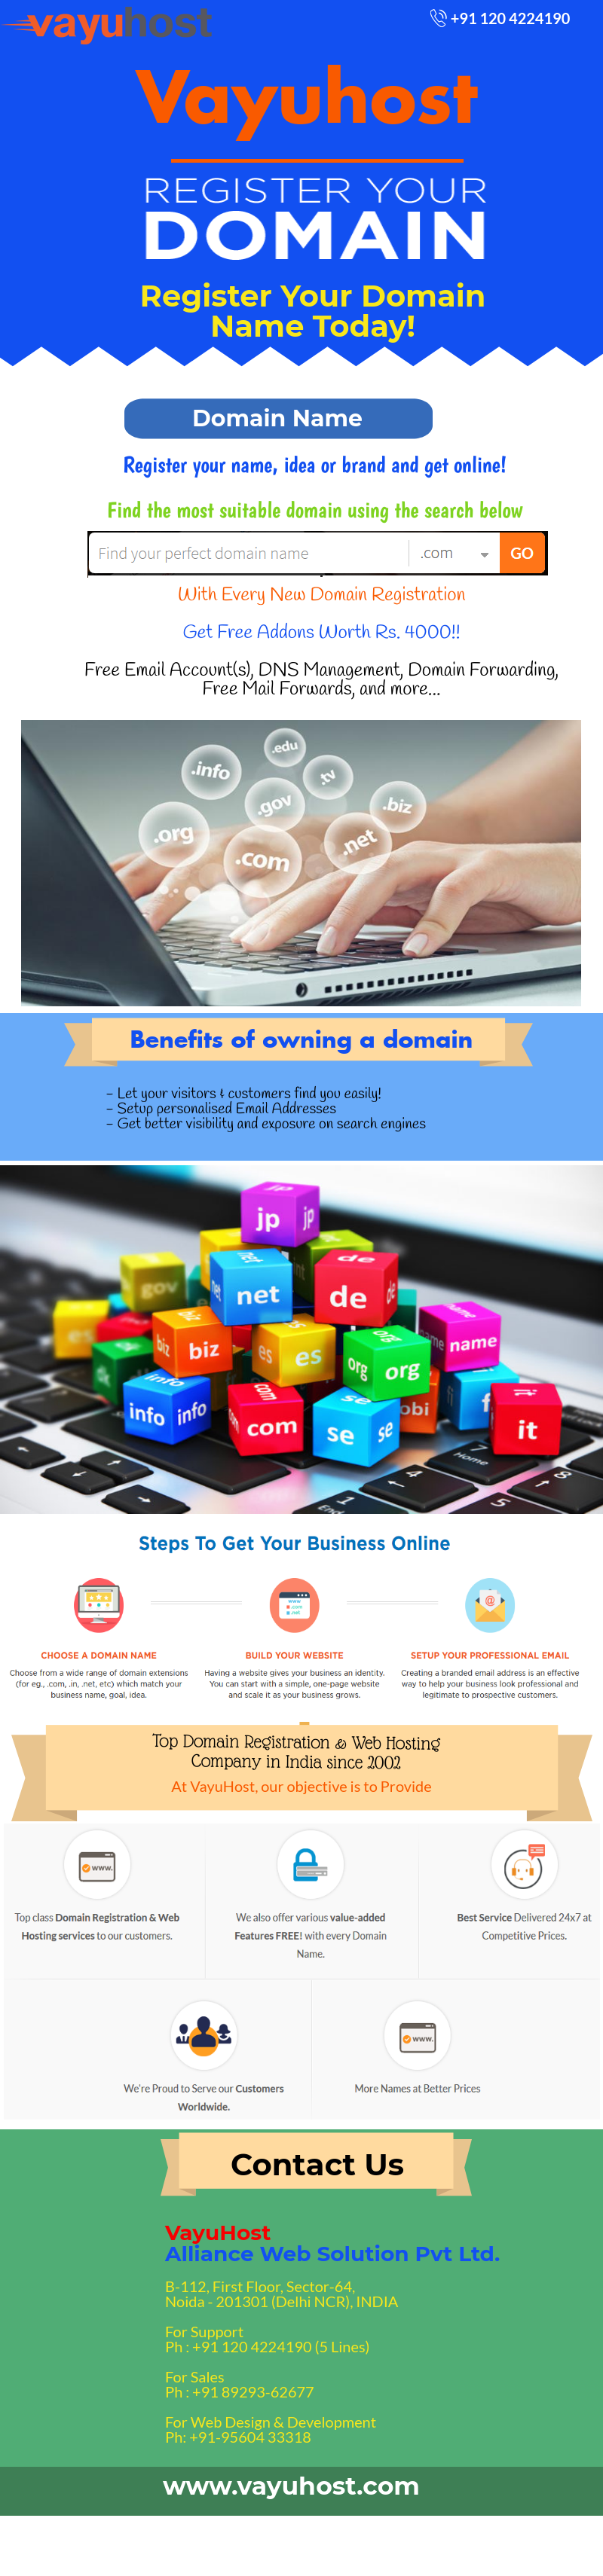 Domain Registration In India Domain Registration Hosting Company Domain